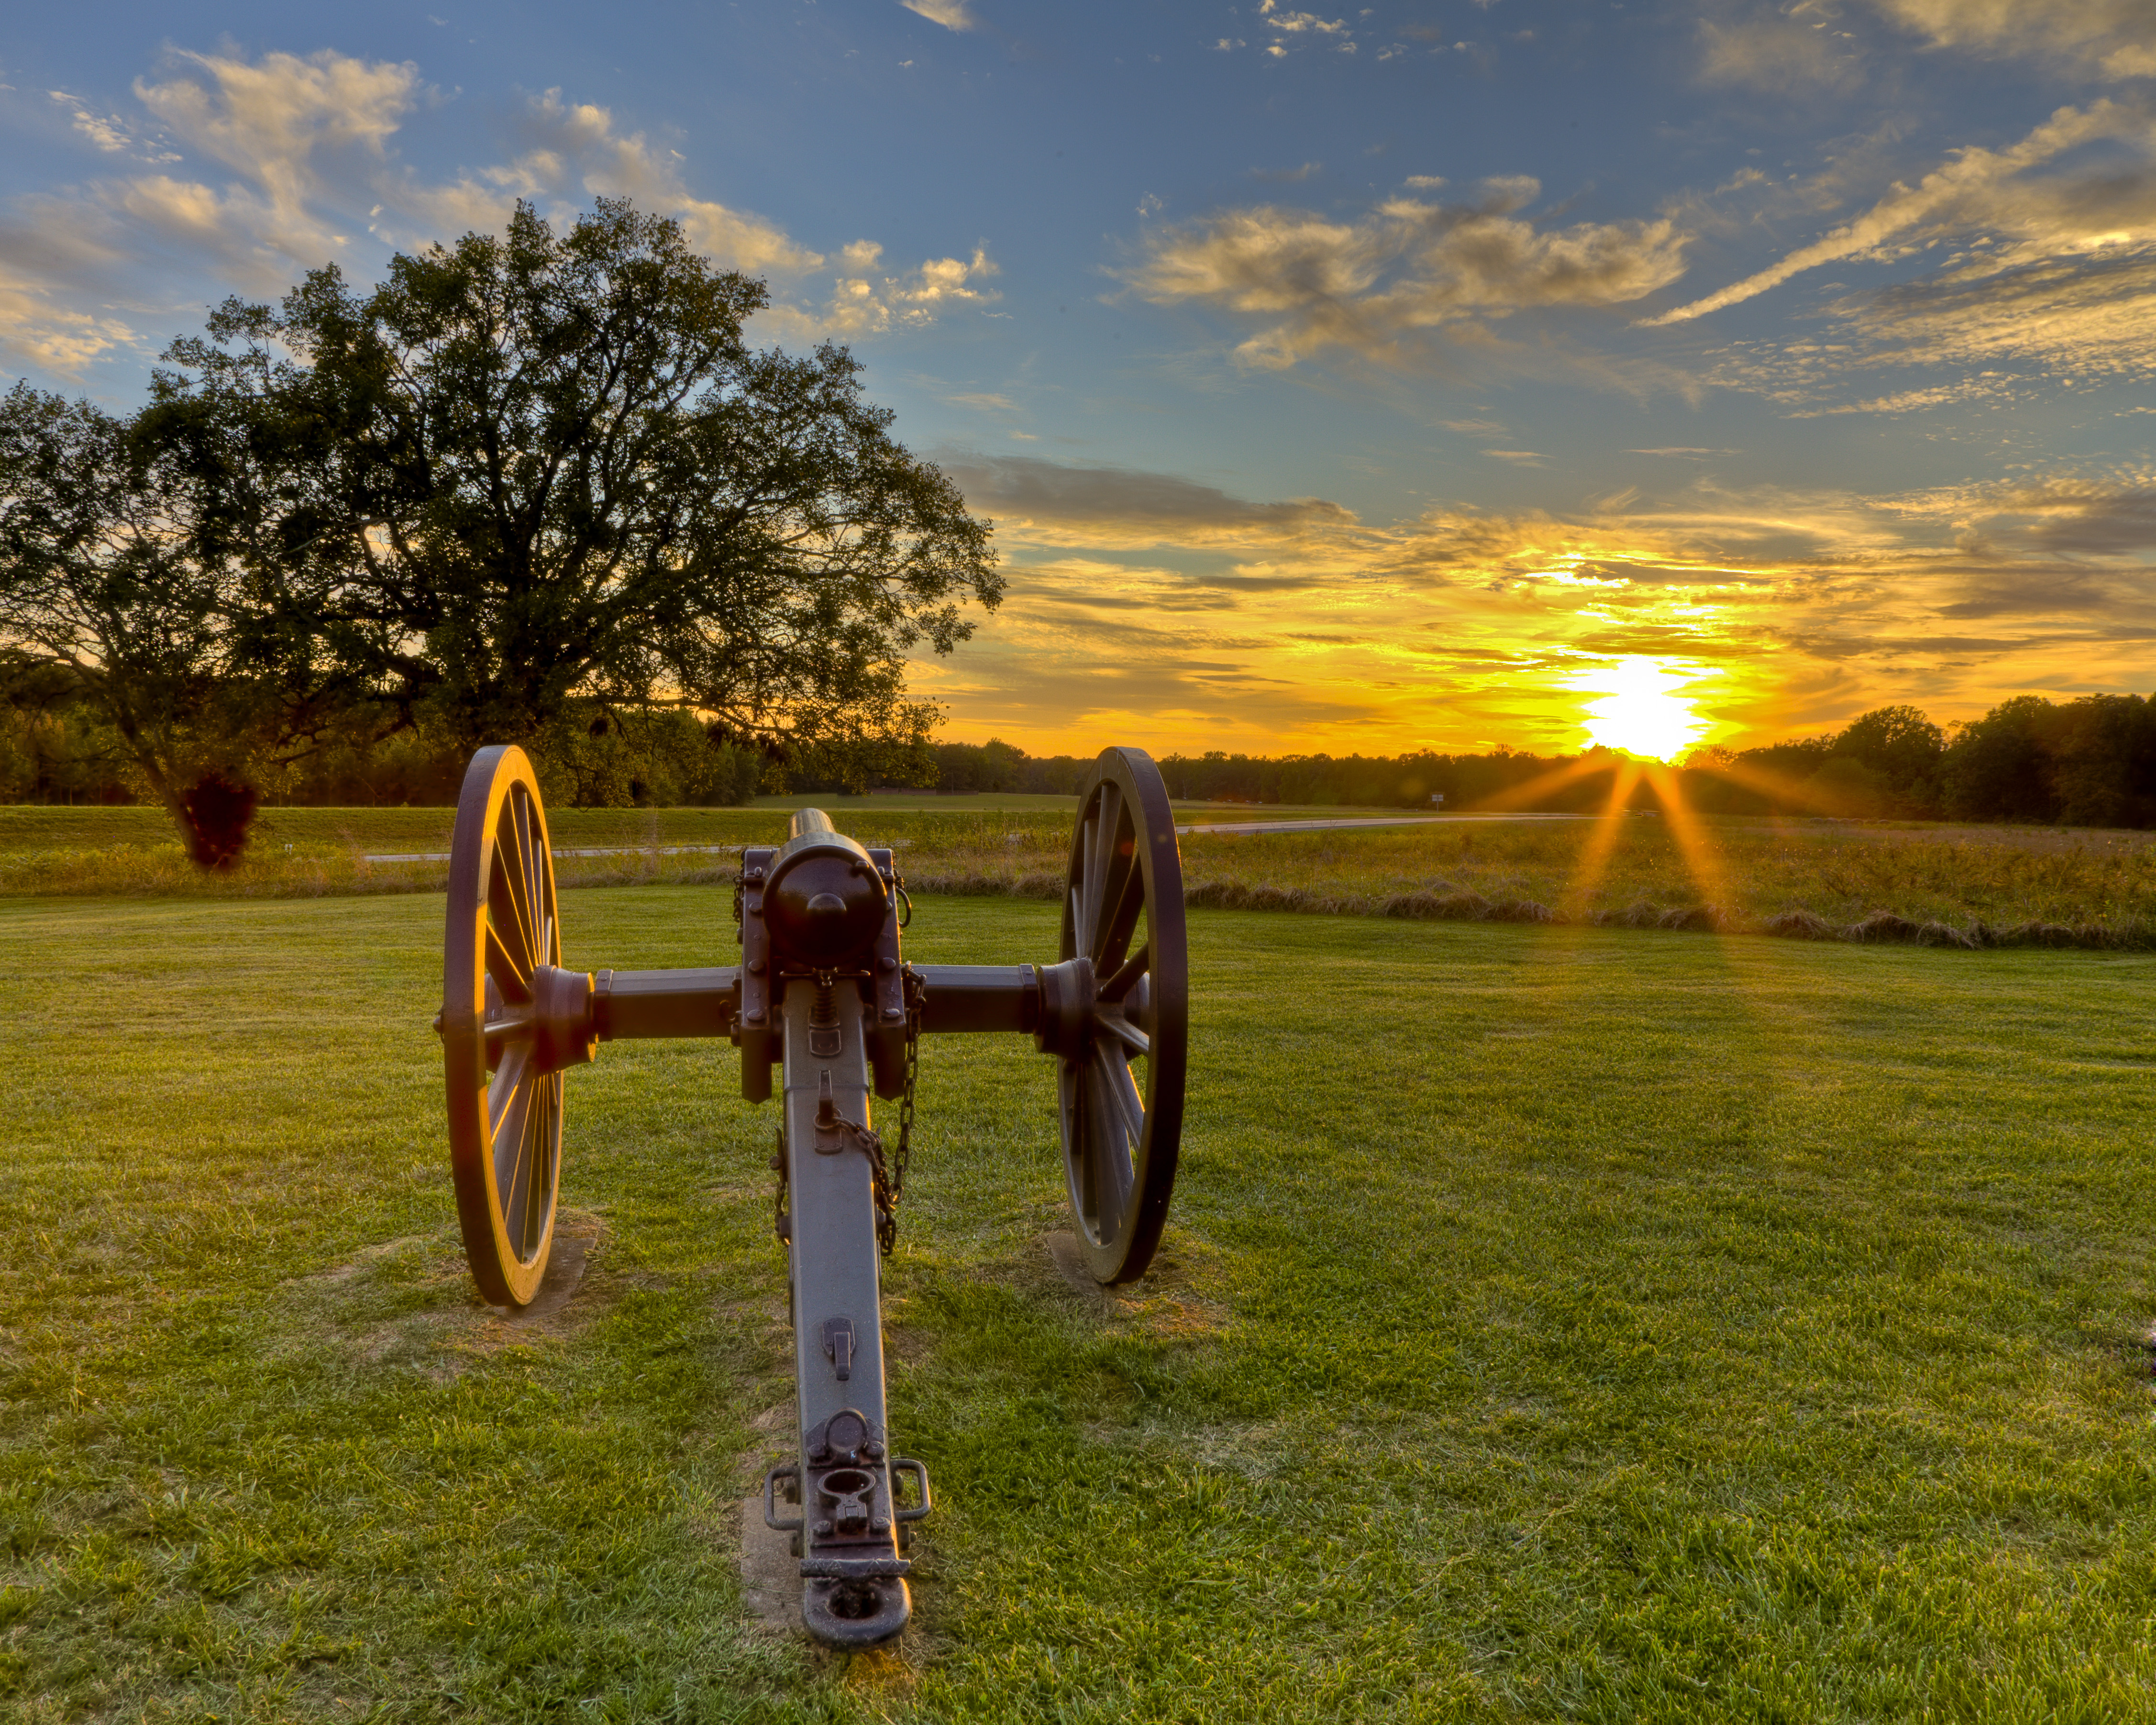 Cannon in front of fields with distant tree line and sun setting in background